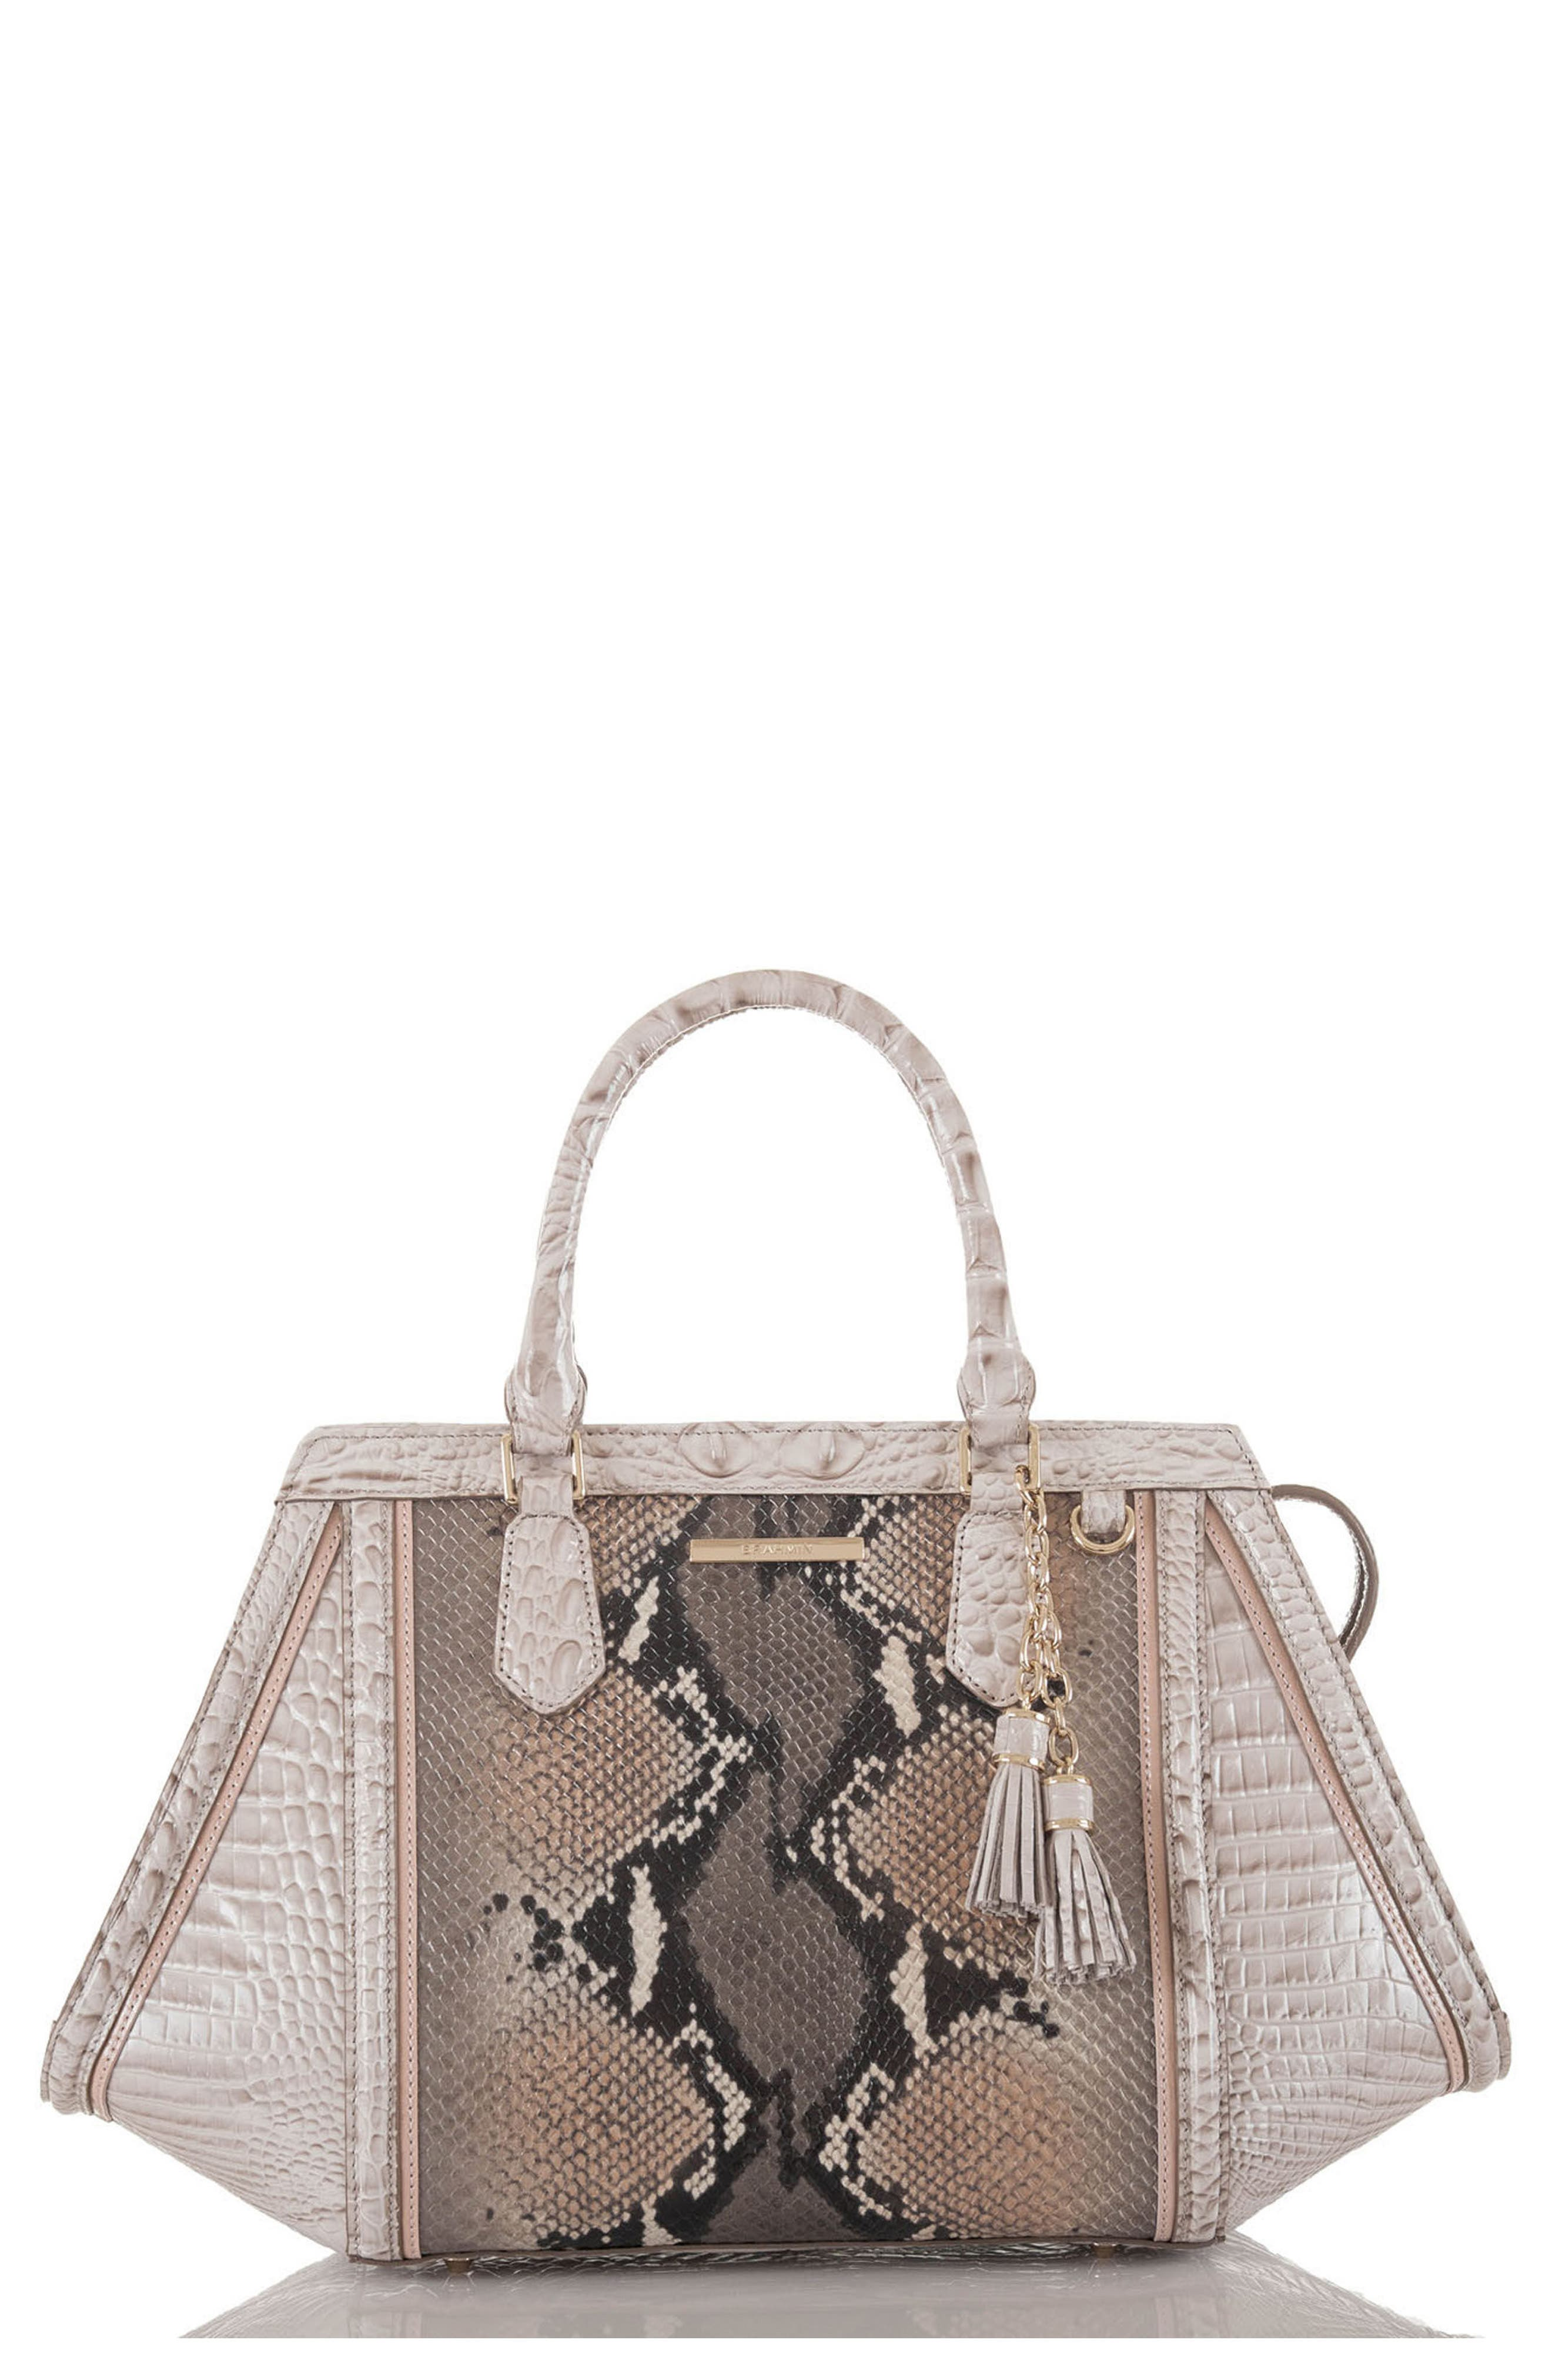 Arden Embossed Leather Satchel,                             Main thumbnail 1, color,                             020